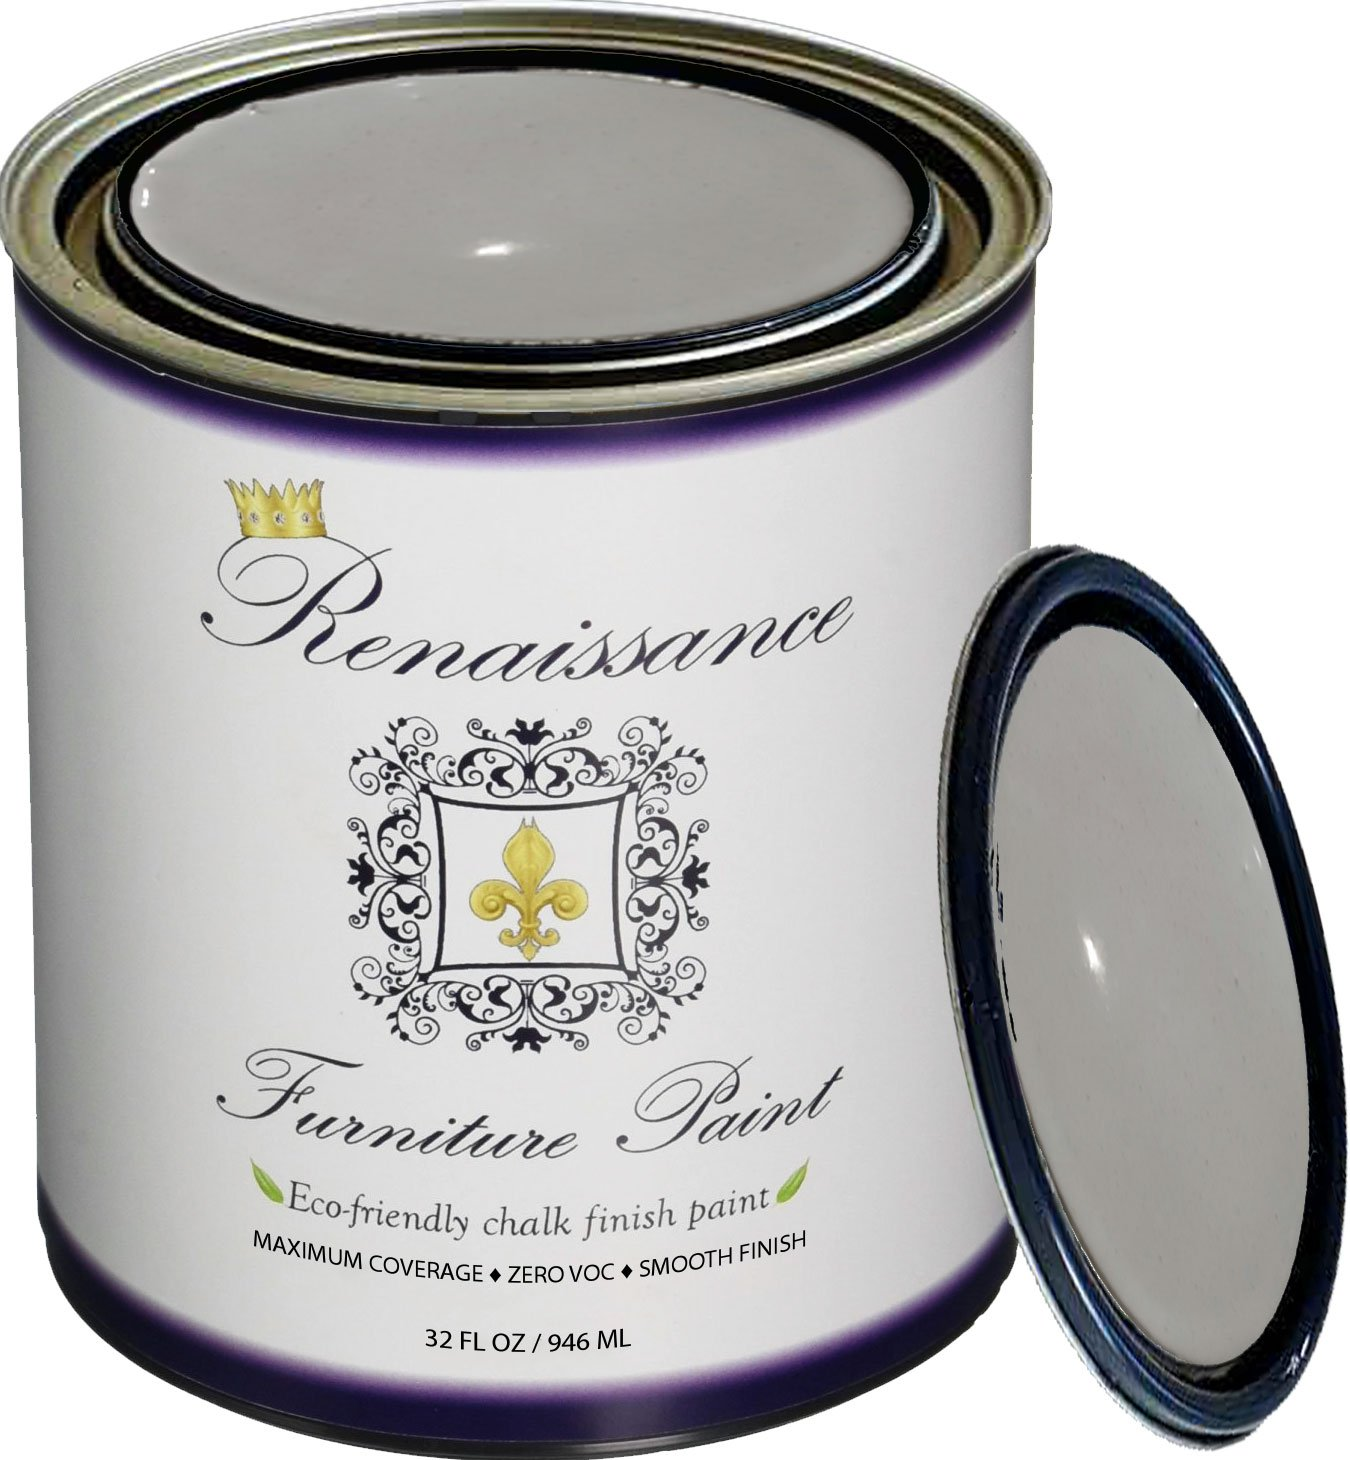 Retique It Chalk Finish Paint by Renaissance - Non Toxic, Eco-Friendly Chalk Furniture & Cabinet Paint - 32 oz (Quart), Dove Gray